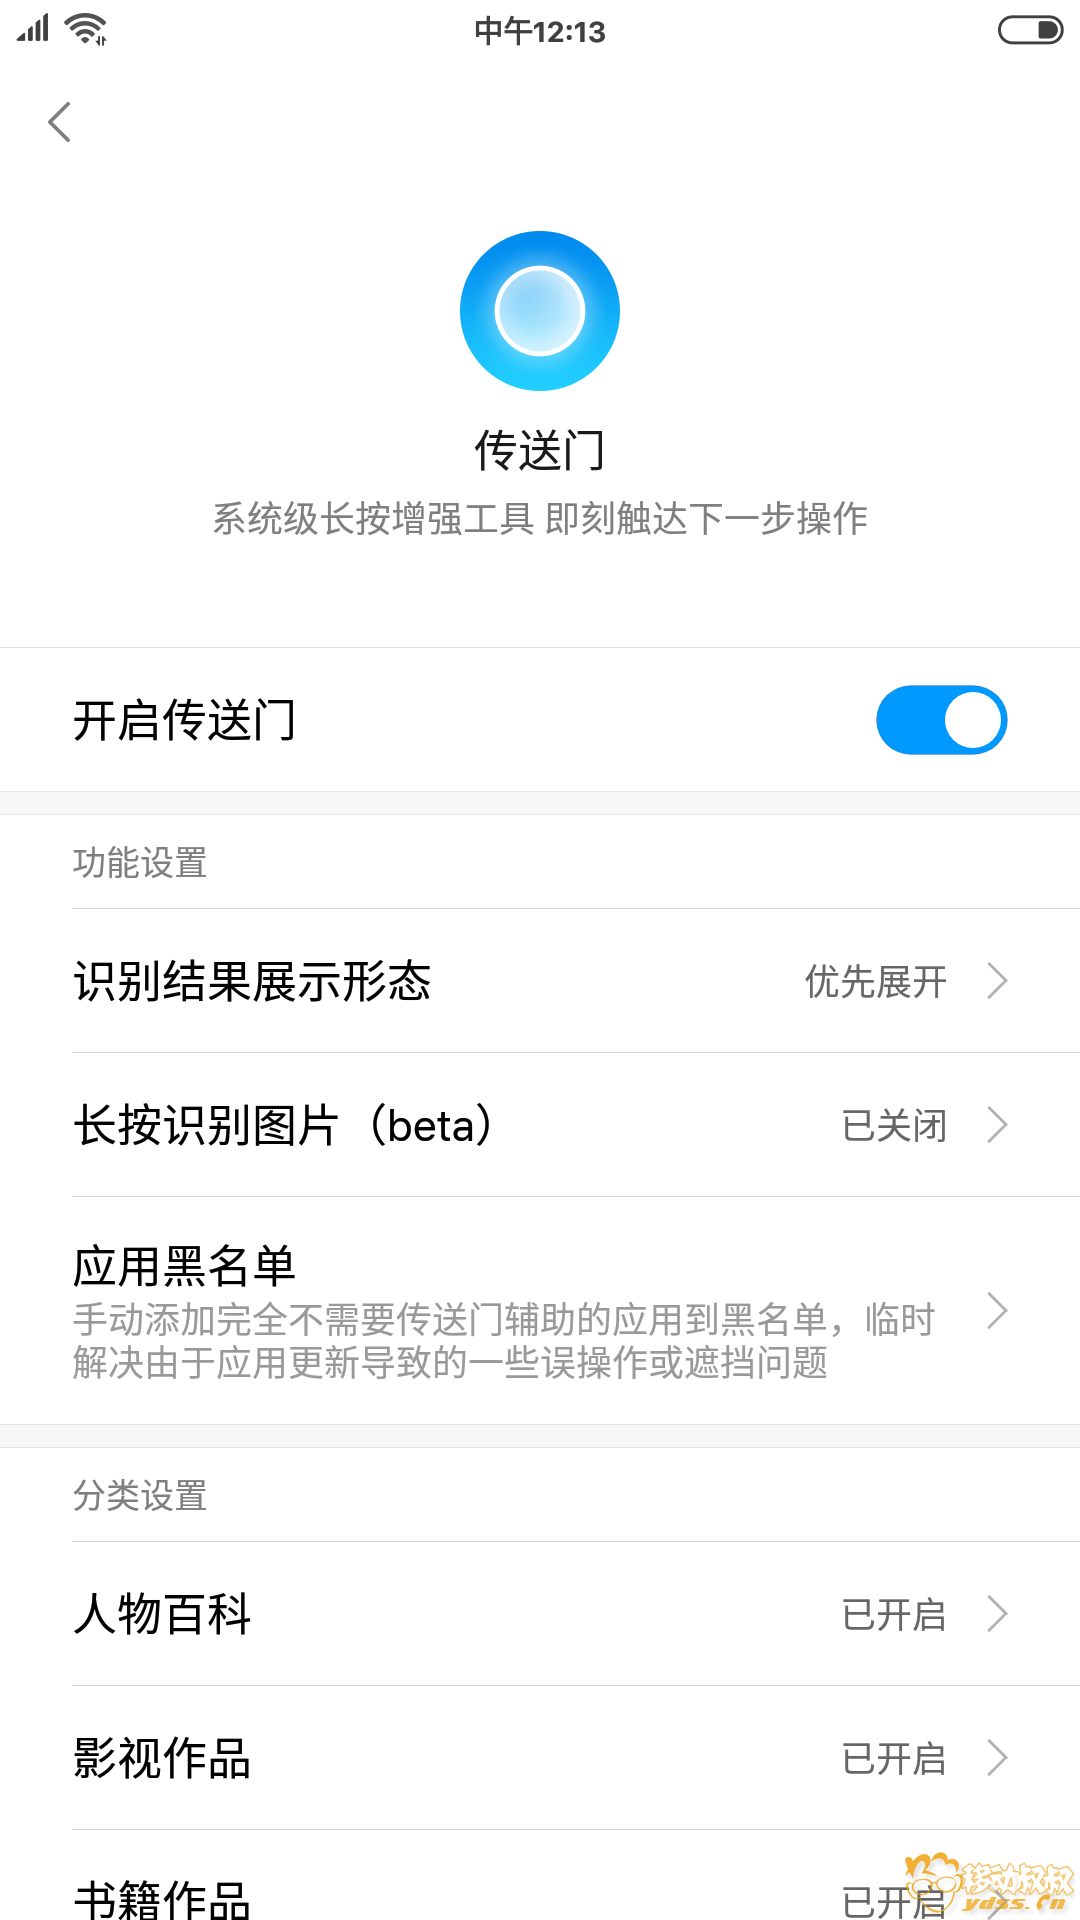 Screenshot_2018-08-10-12-13-54-668_com.miui.contentextension.png